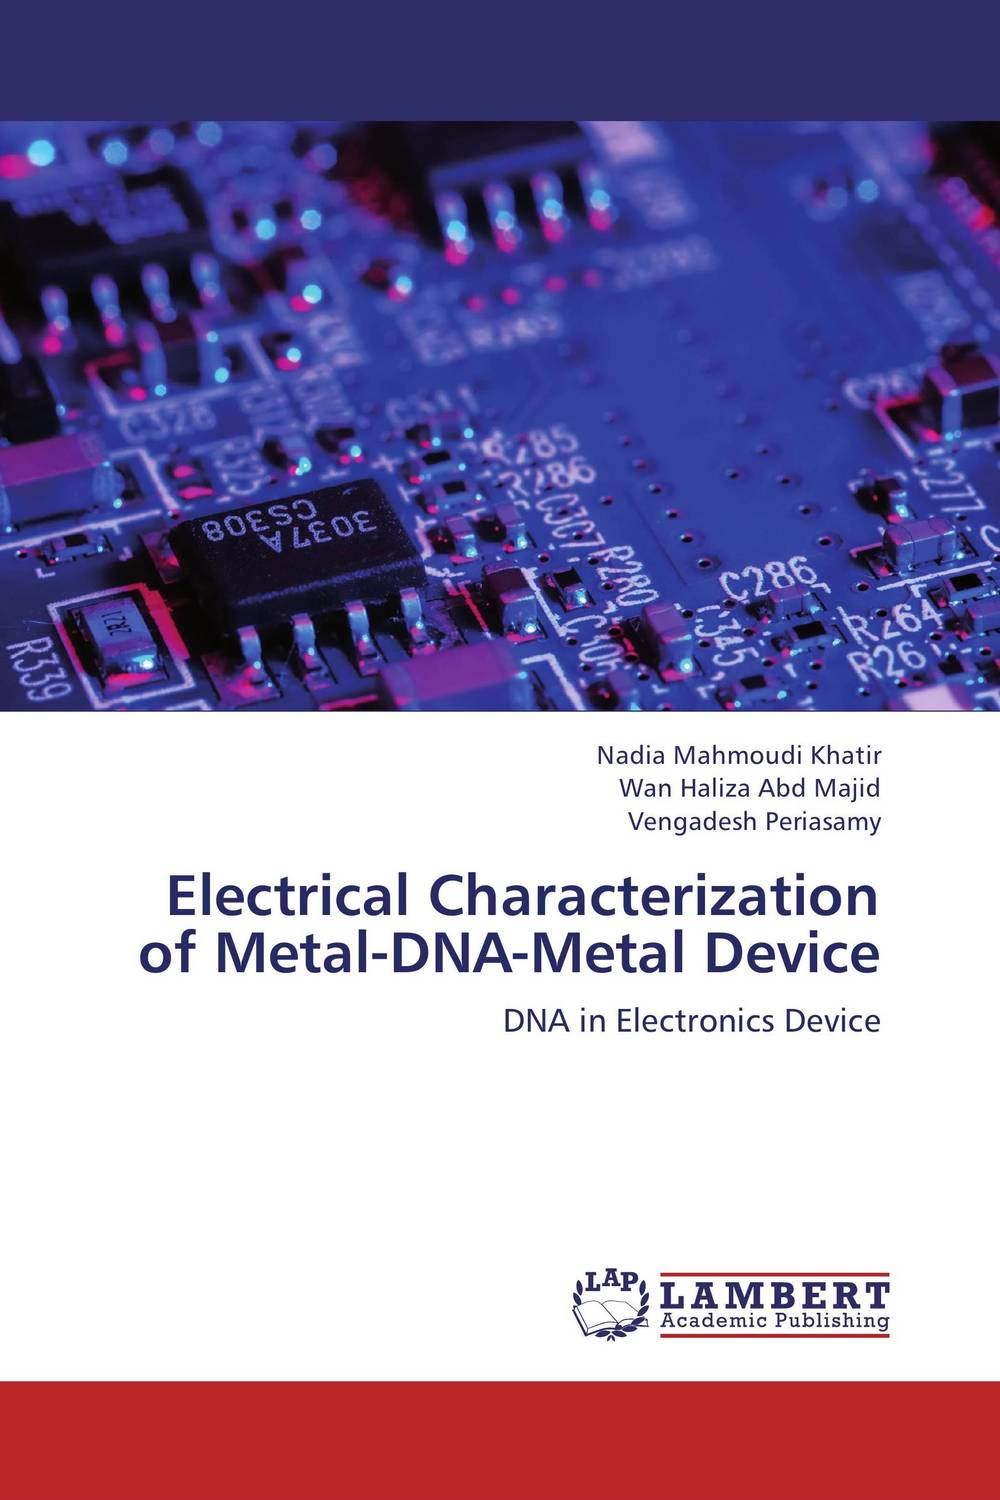 Electrical Characterization of Metal-DNA-Metal Device tapan kumar dutta and parimal roychoudhury diagnosis and characterization of bacterial pathogens in animal